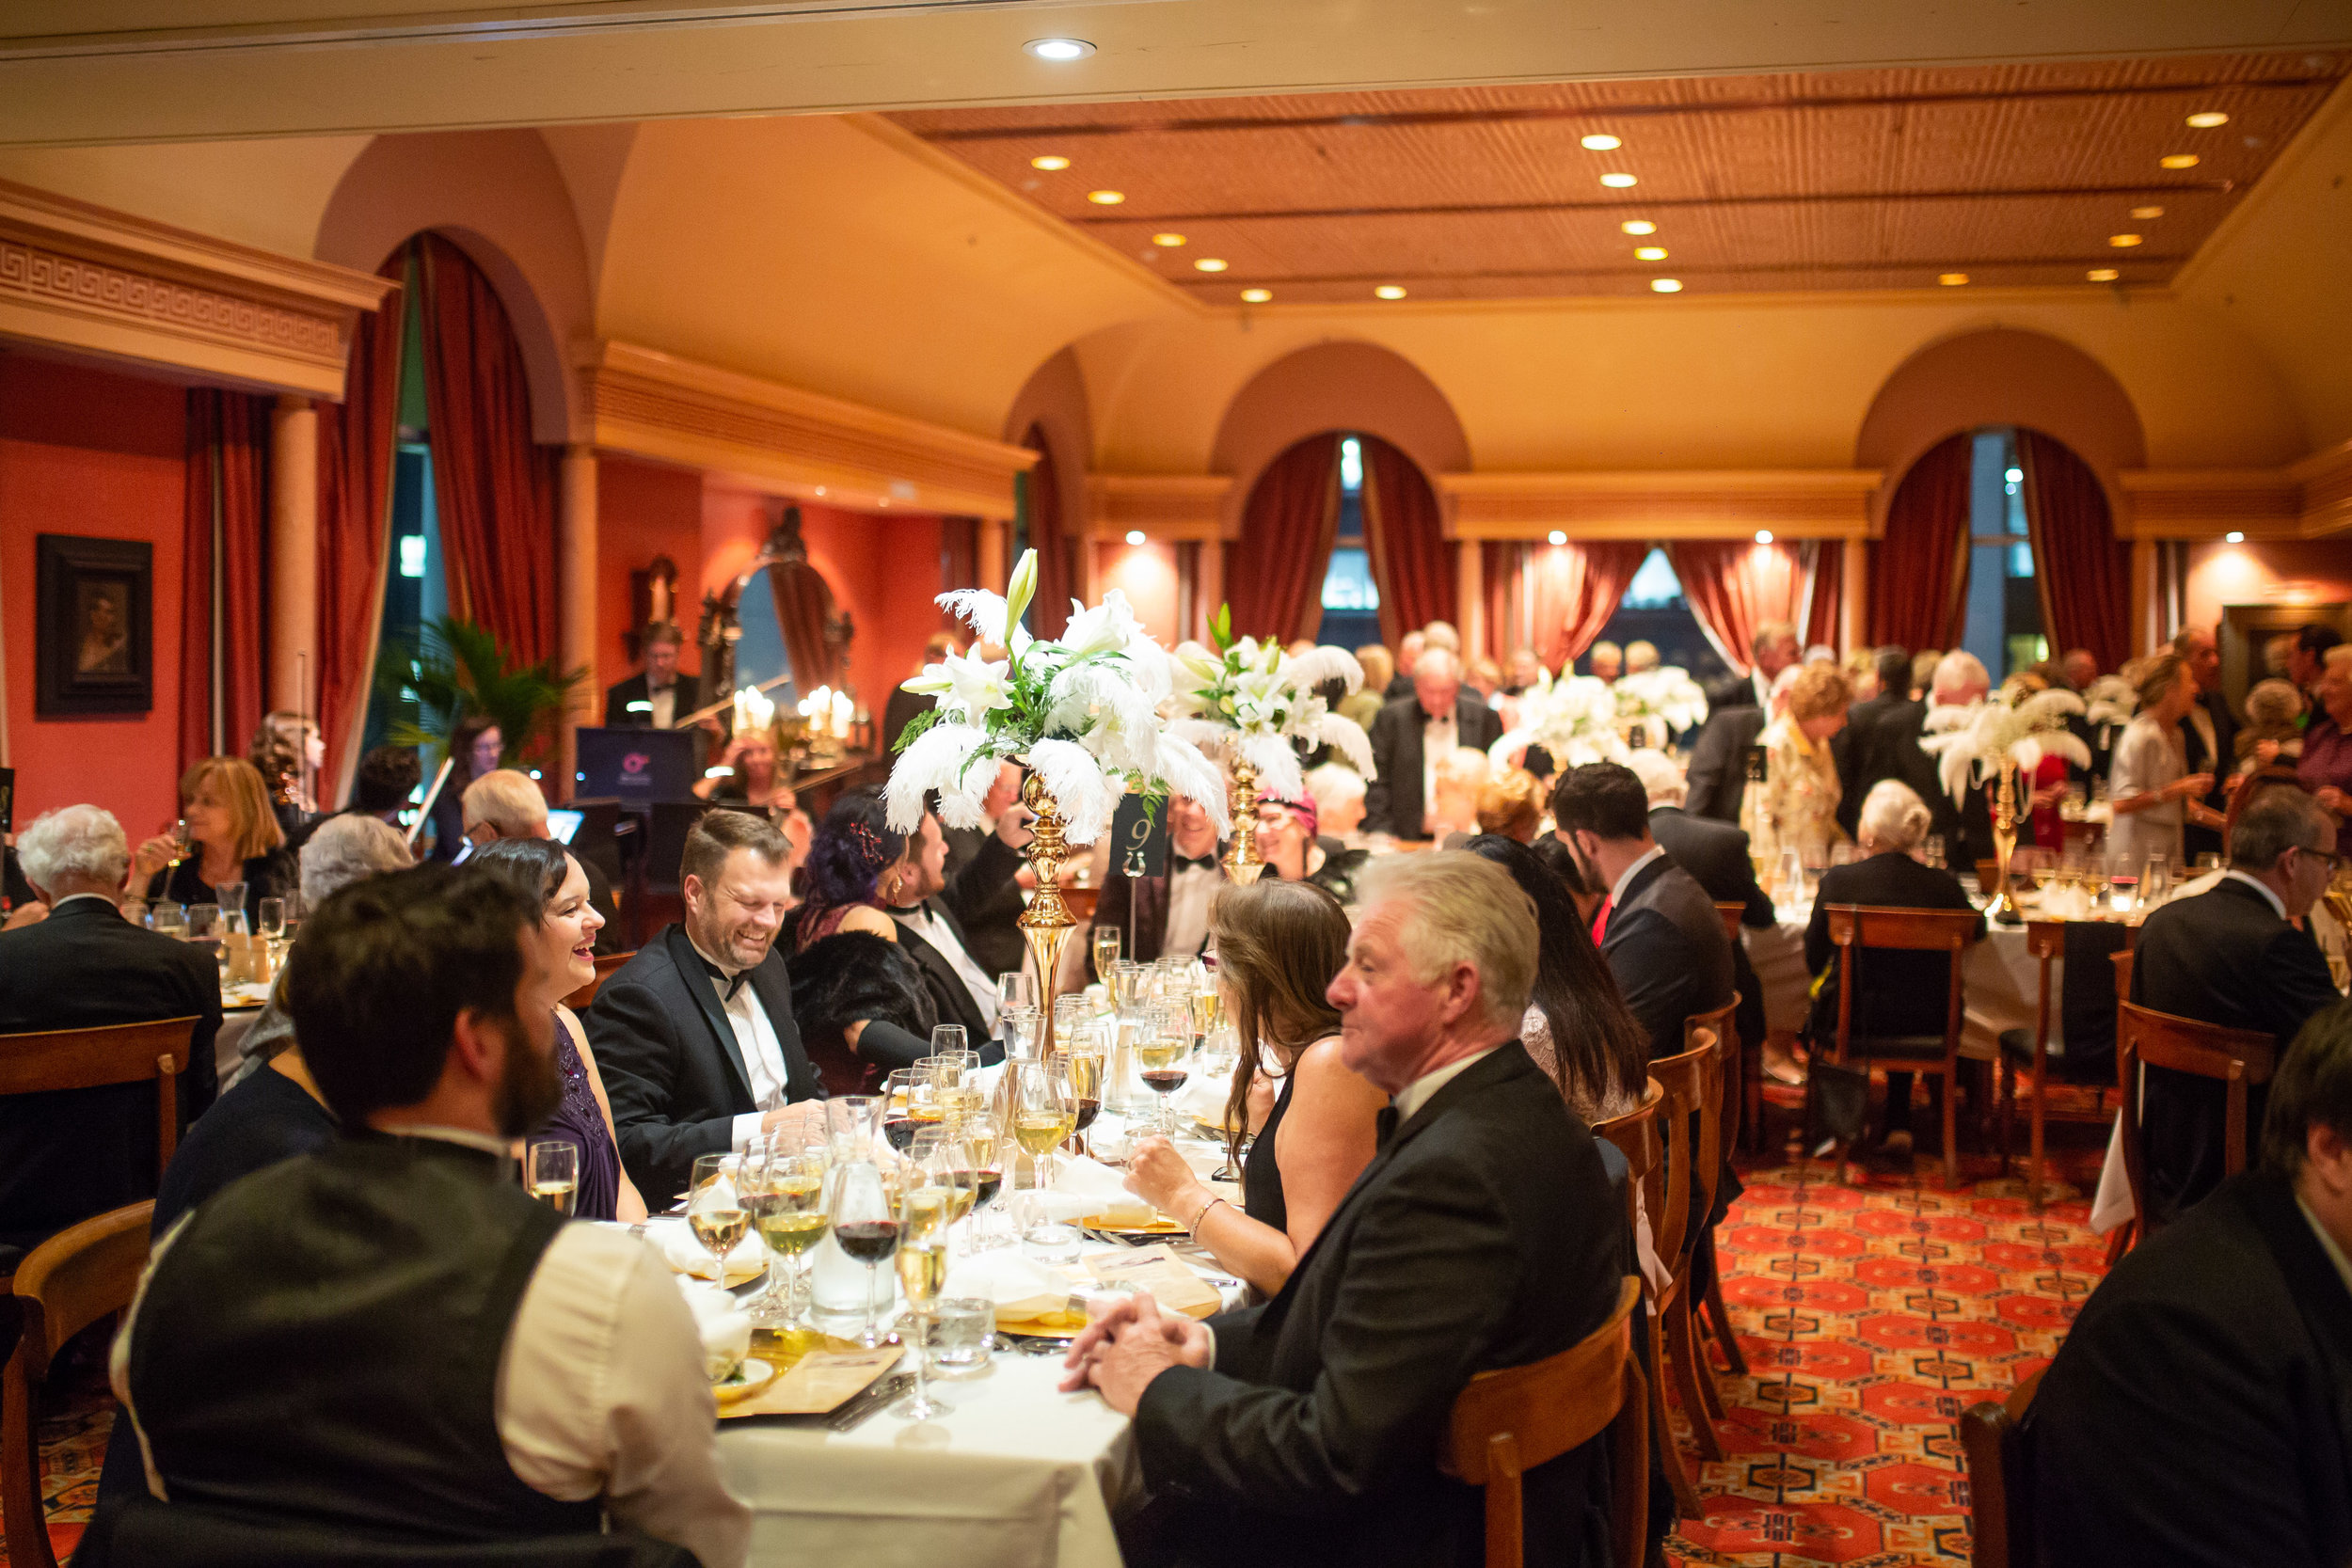 RMS TITANIC DINNER, 11 APRIL 2018